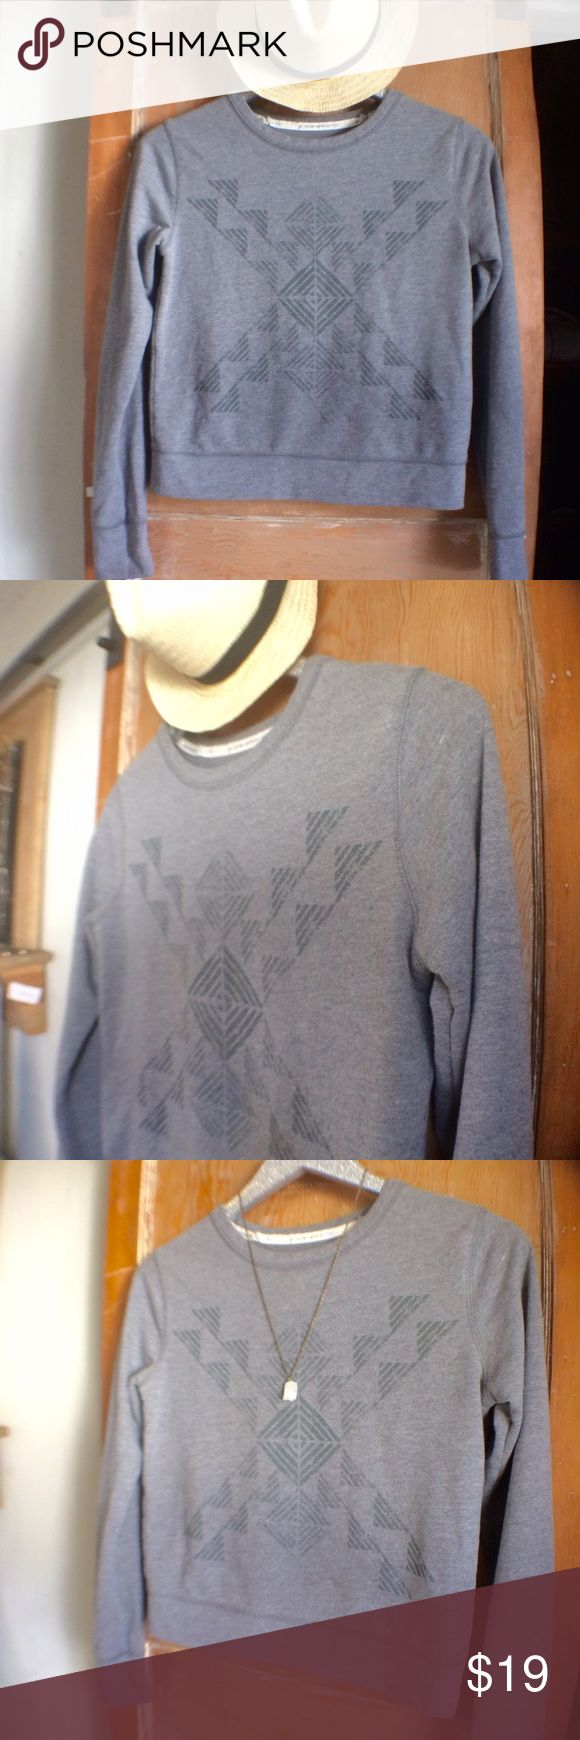 NWOT Toms Geometric Print gray Crew cut sweatshirt This crew cut sweatshirt is so cute. Made by TOMS, features a great Geometric Print and perfect heather gray color. So cute. 🌞🌈🌳 Sweaters Crew & Scoop Necks